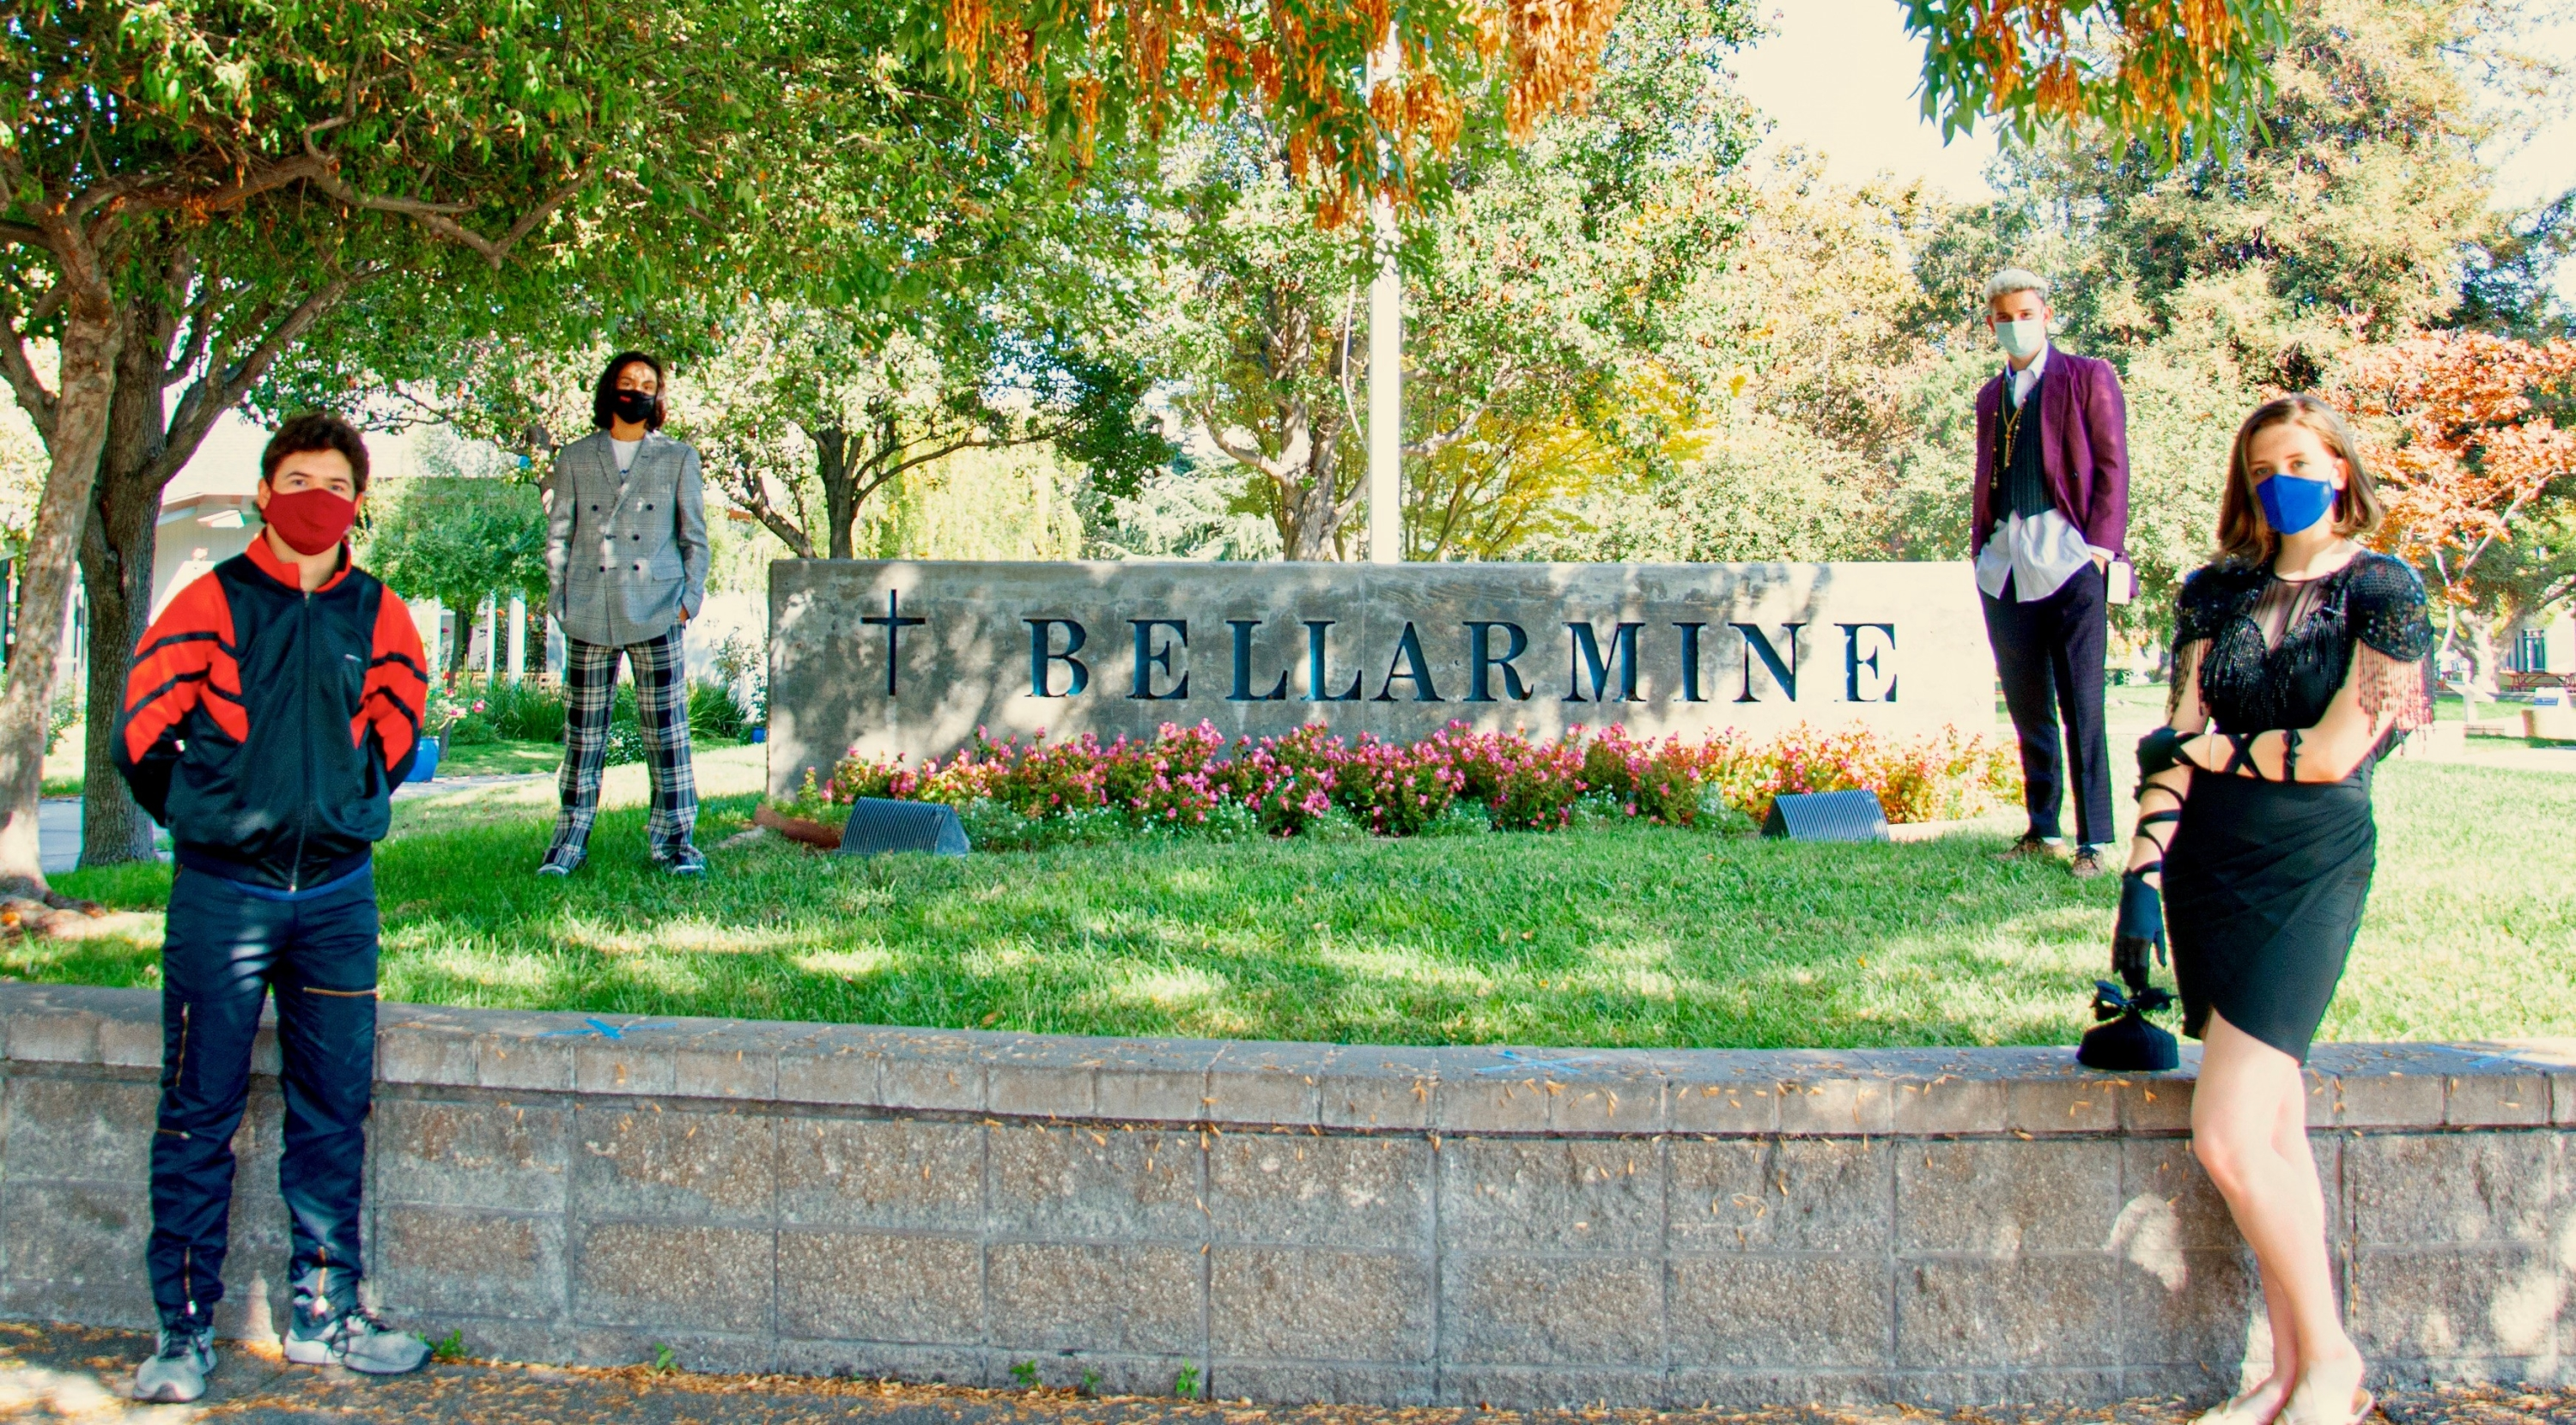 66th Annual Bellarmine Mothers' Guild fashion show at Online event